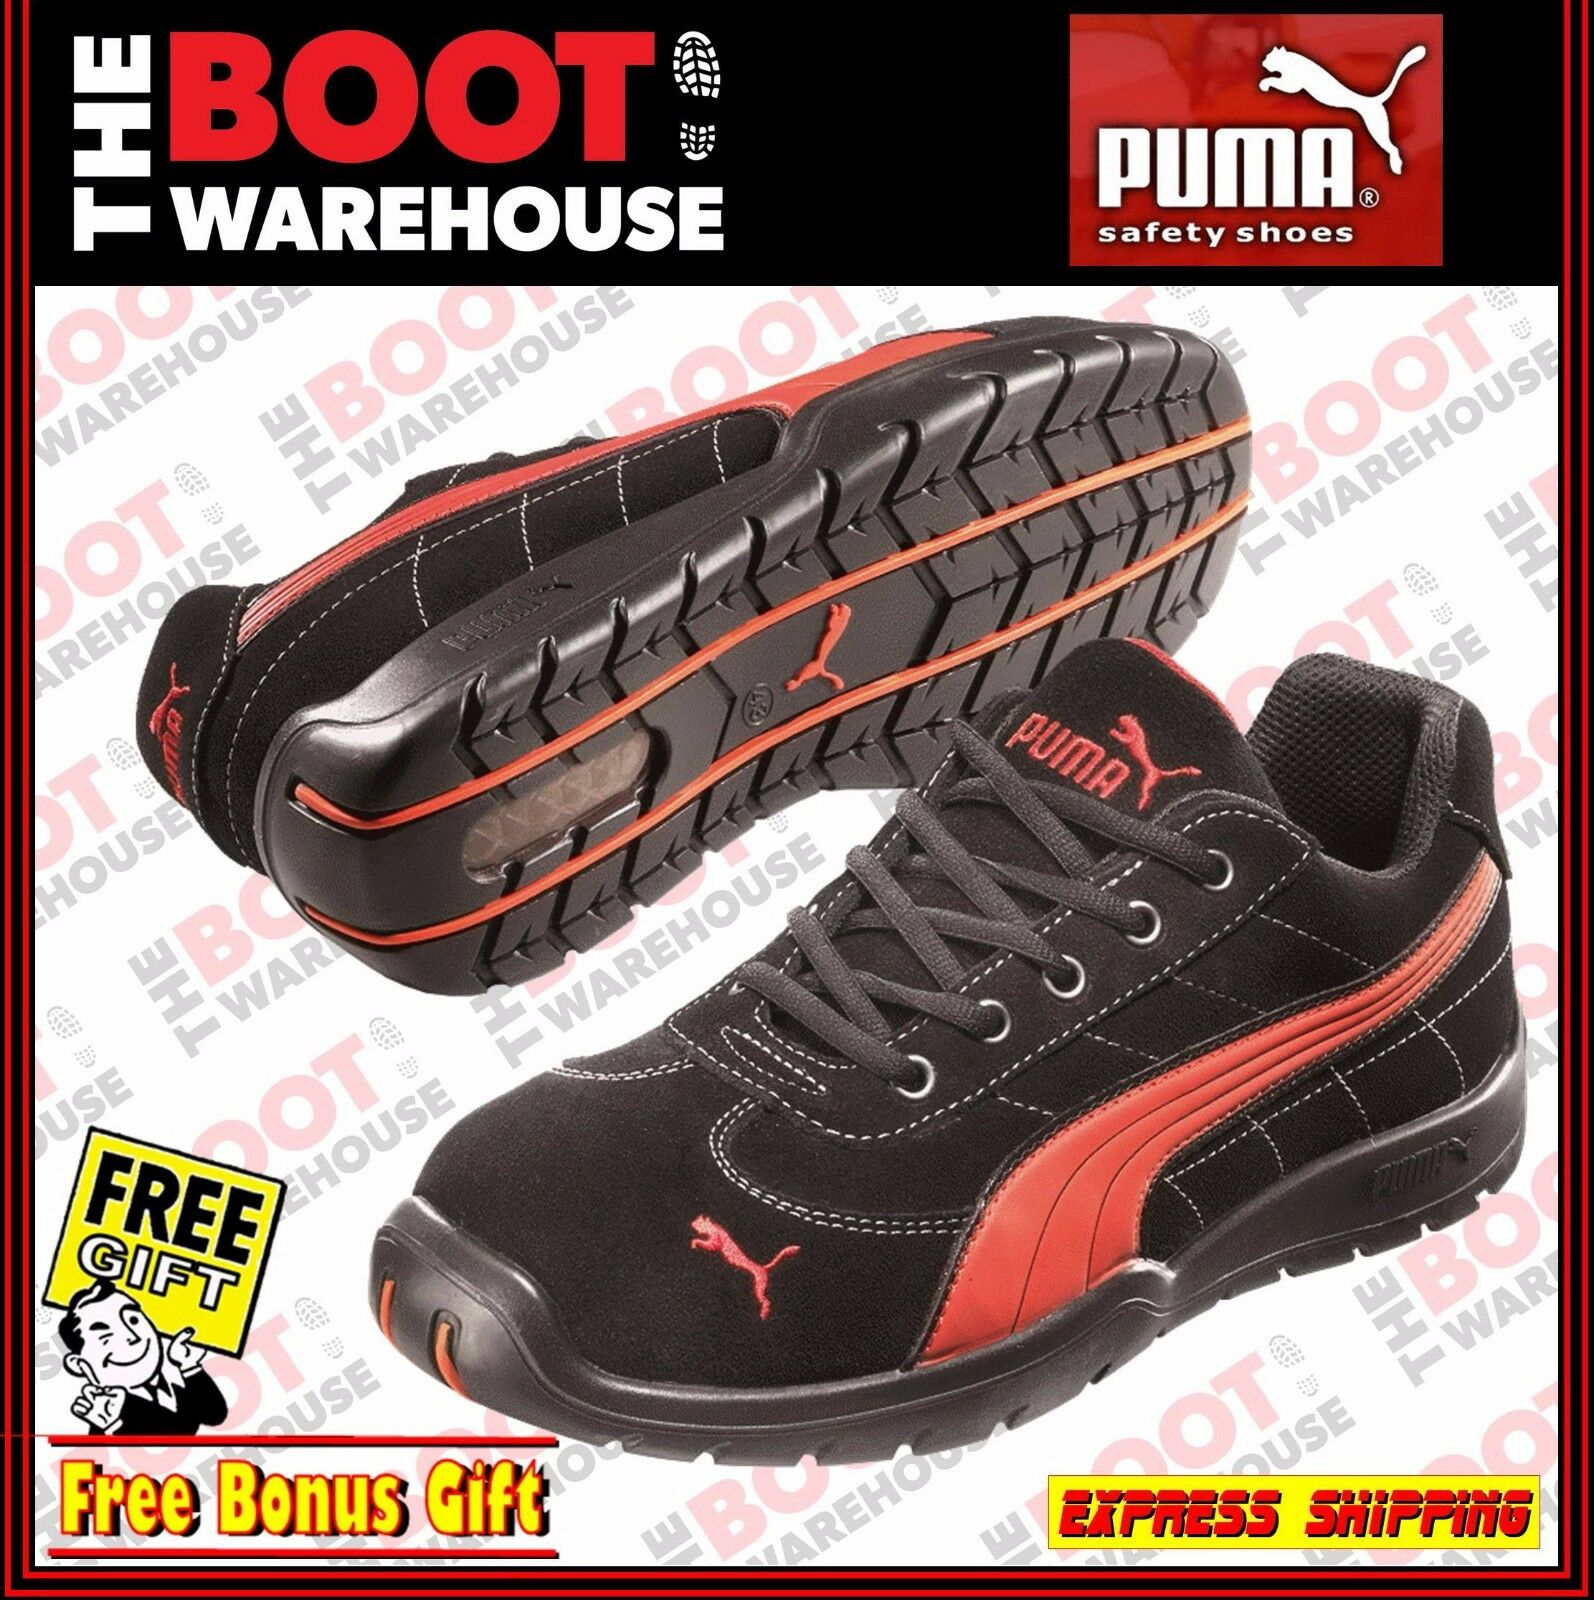 Details about Puma Composite Toe Cap Safety Work Jogger Shoes 'Silverstone 642637